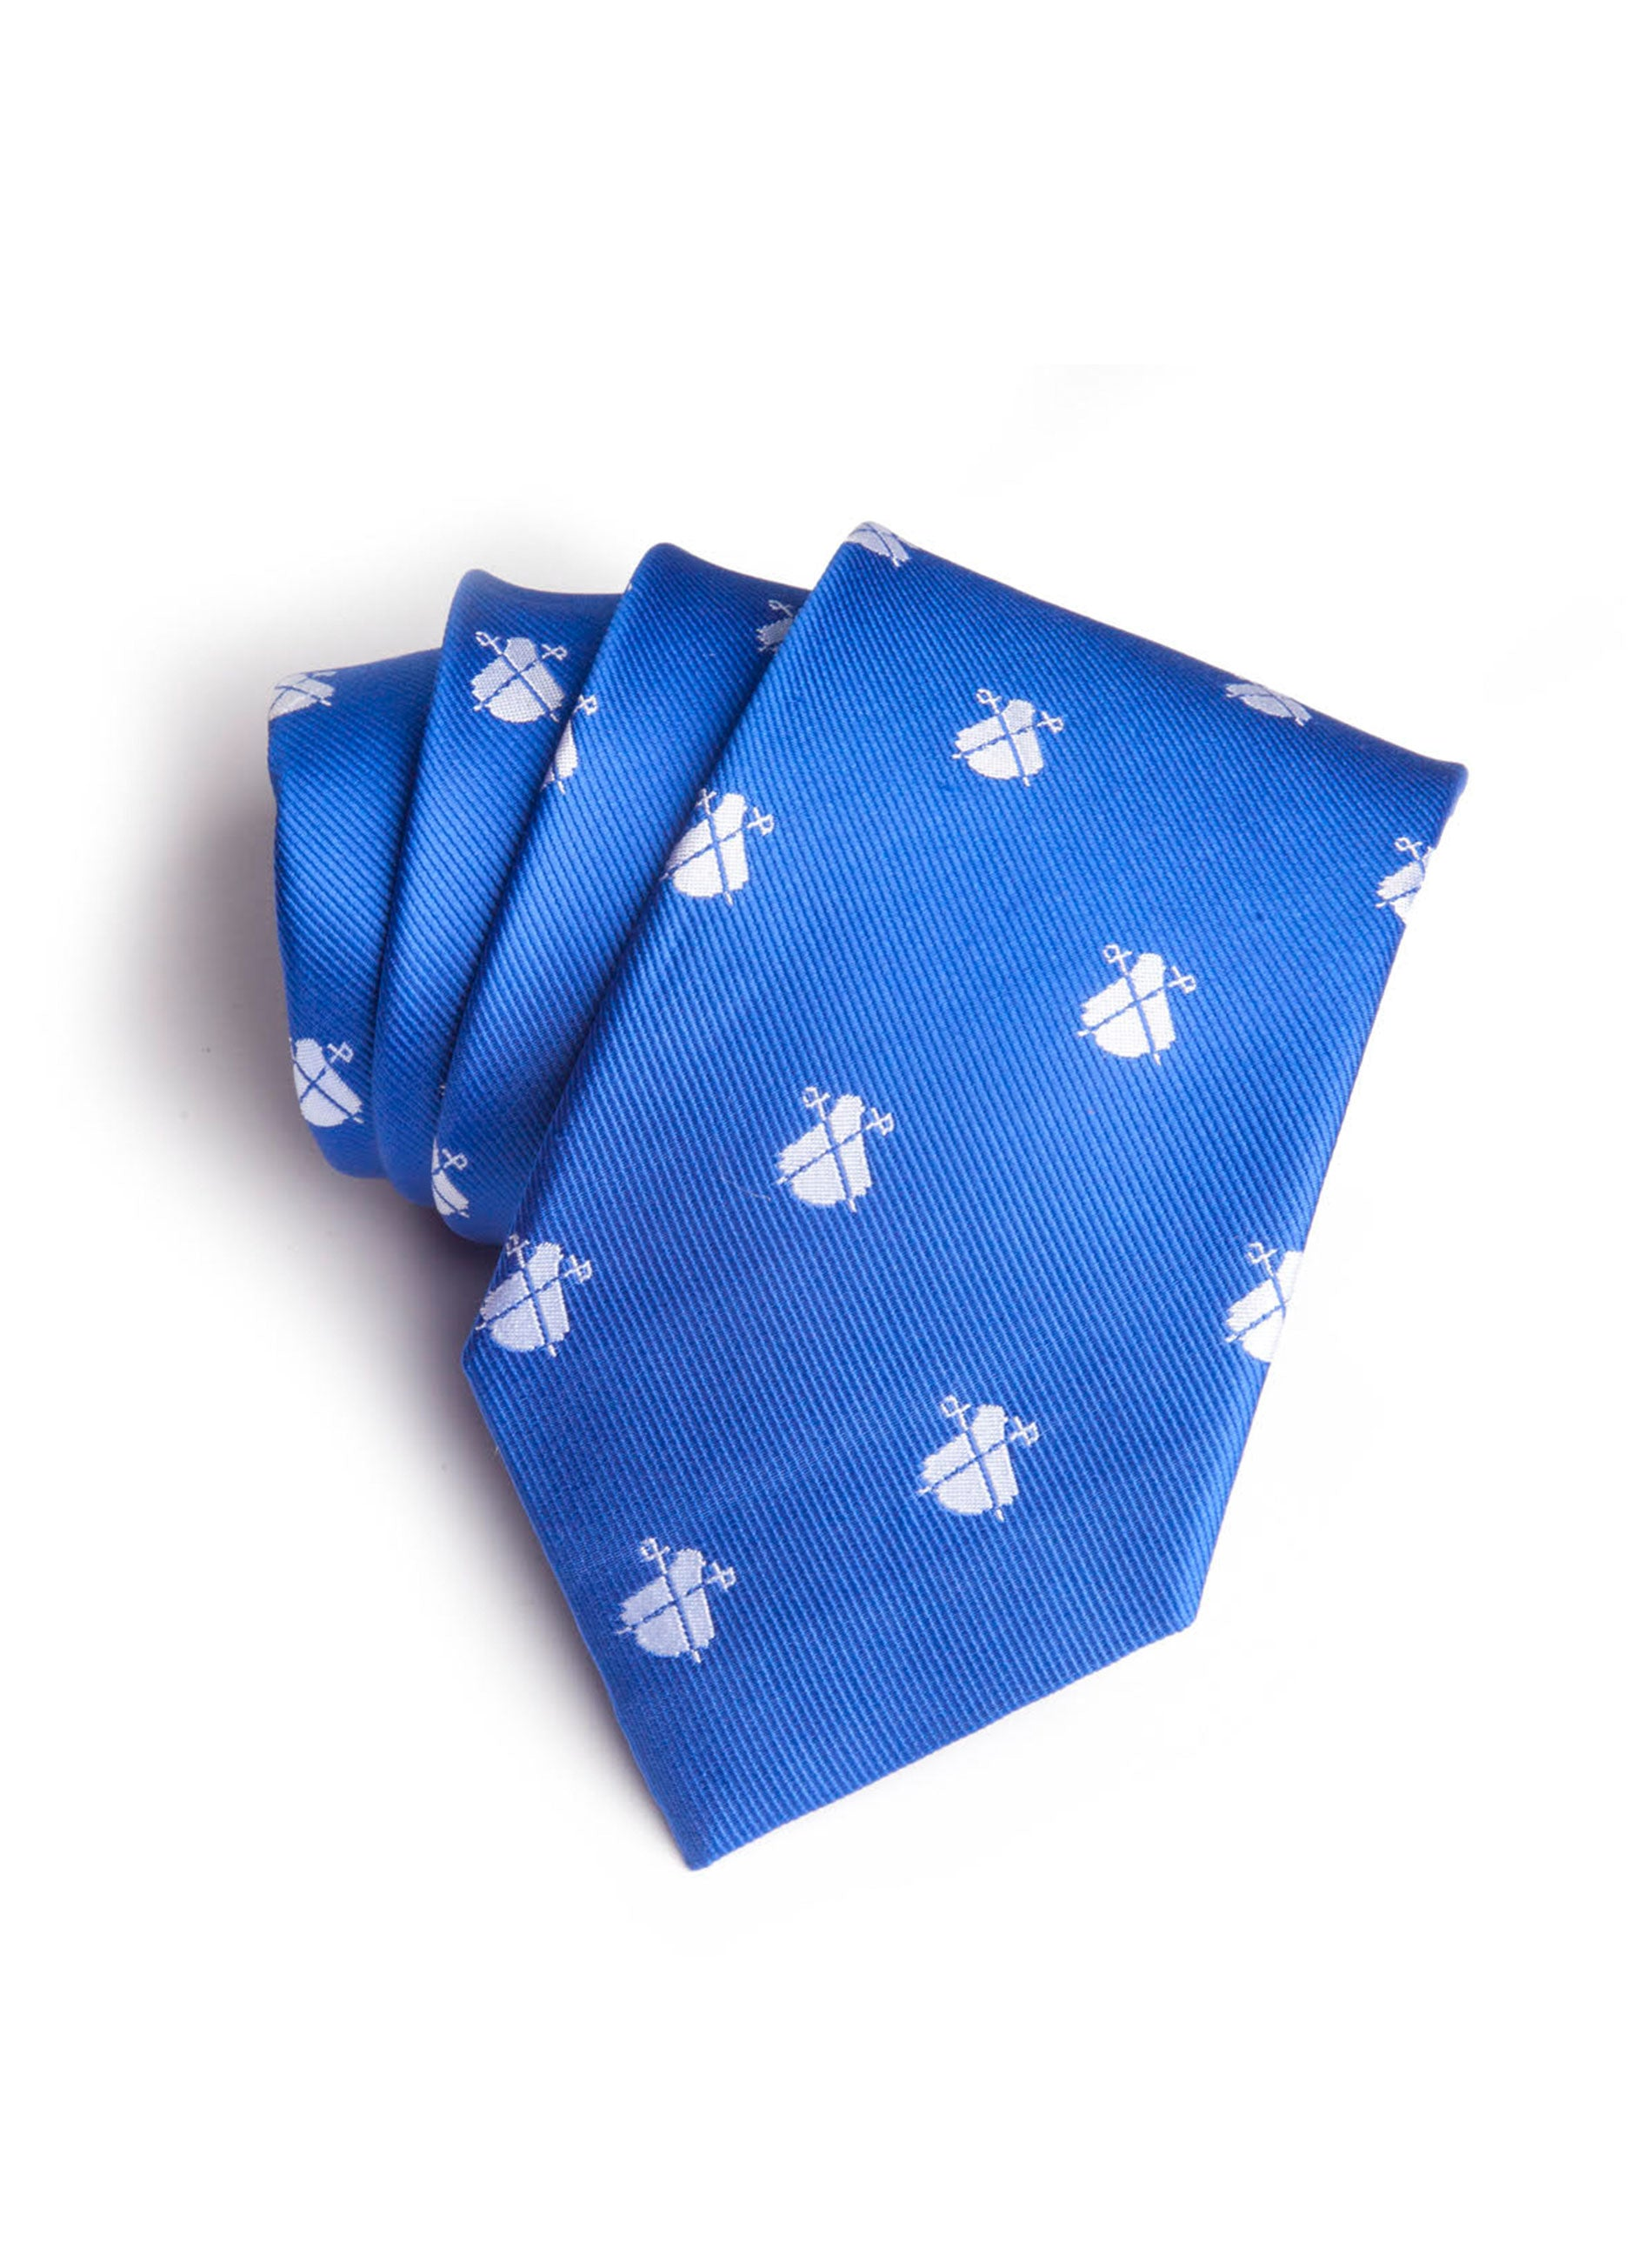 BLUE TIE ROYAL LOGOS BLANCOS